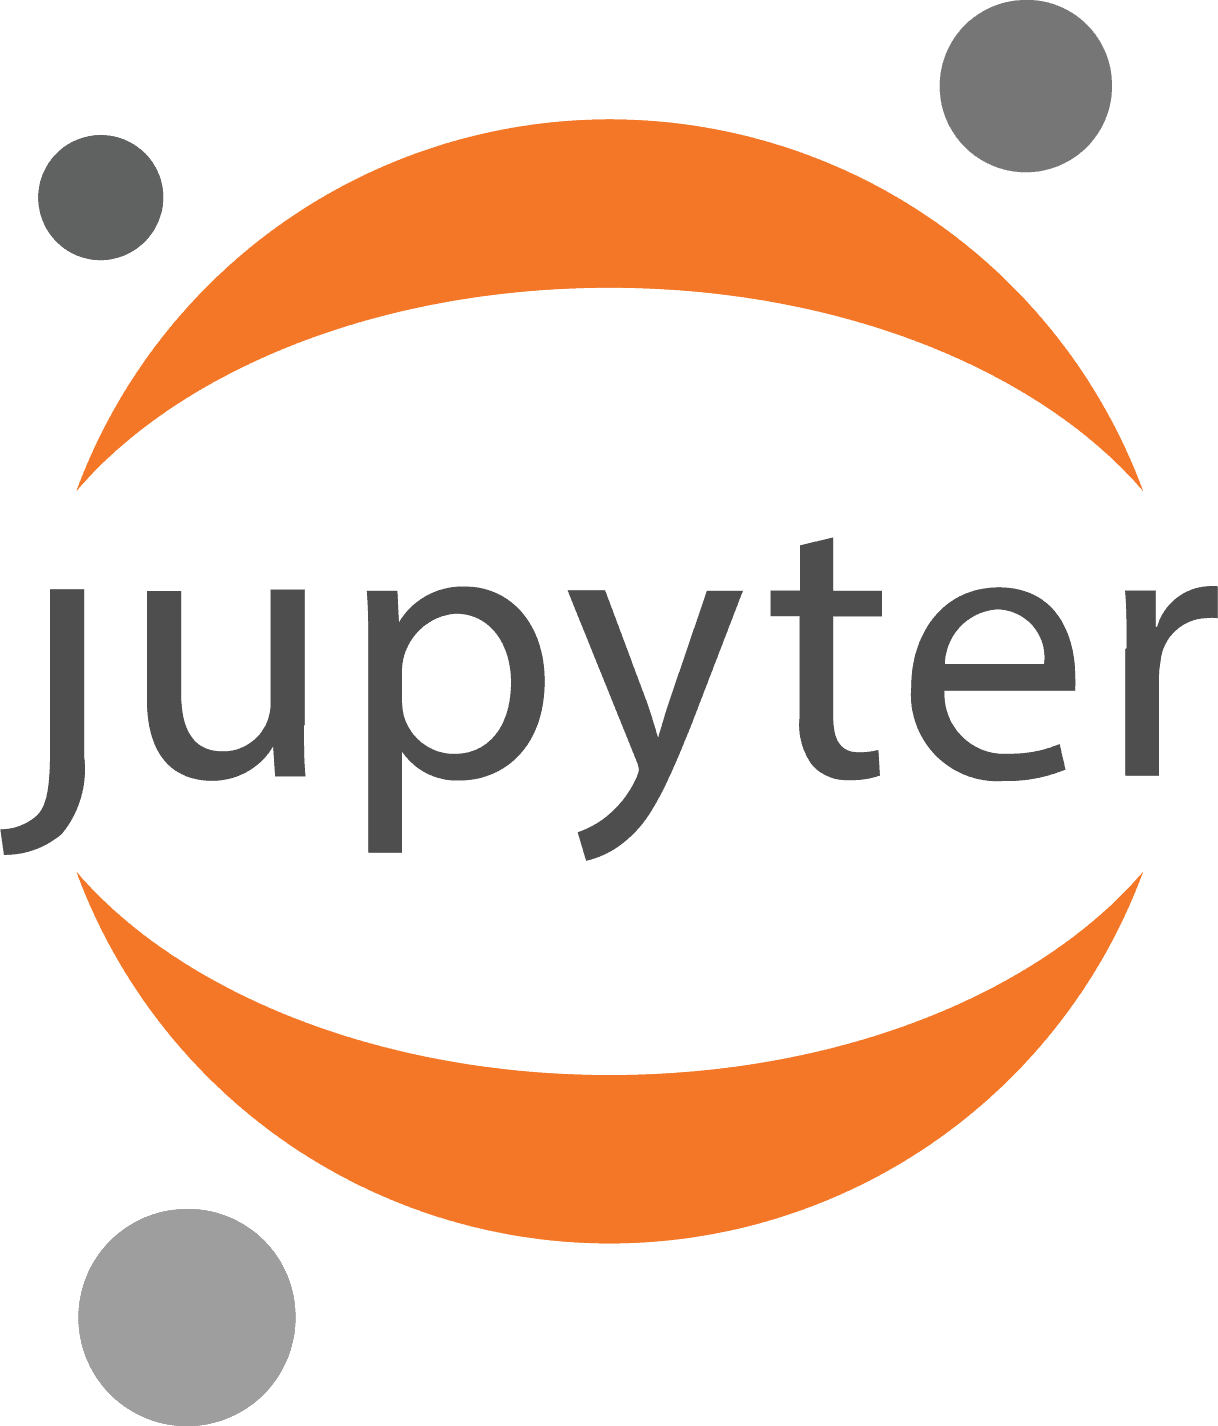 Project Jupyter Logo png